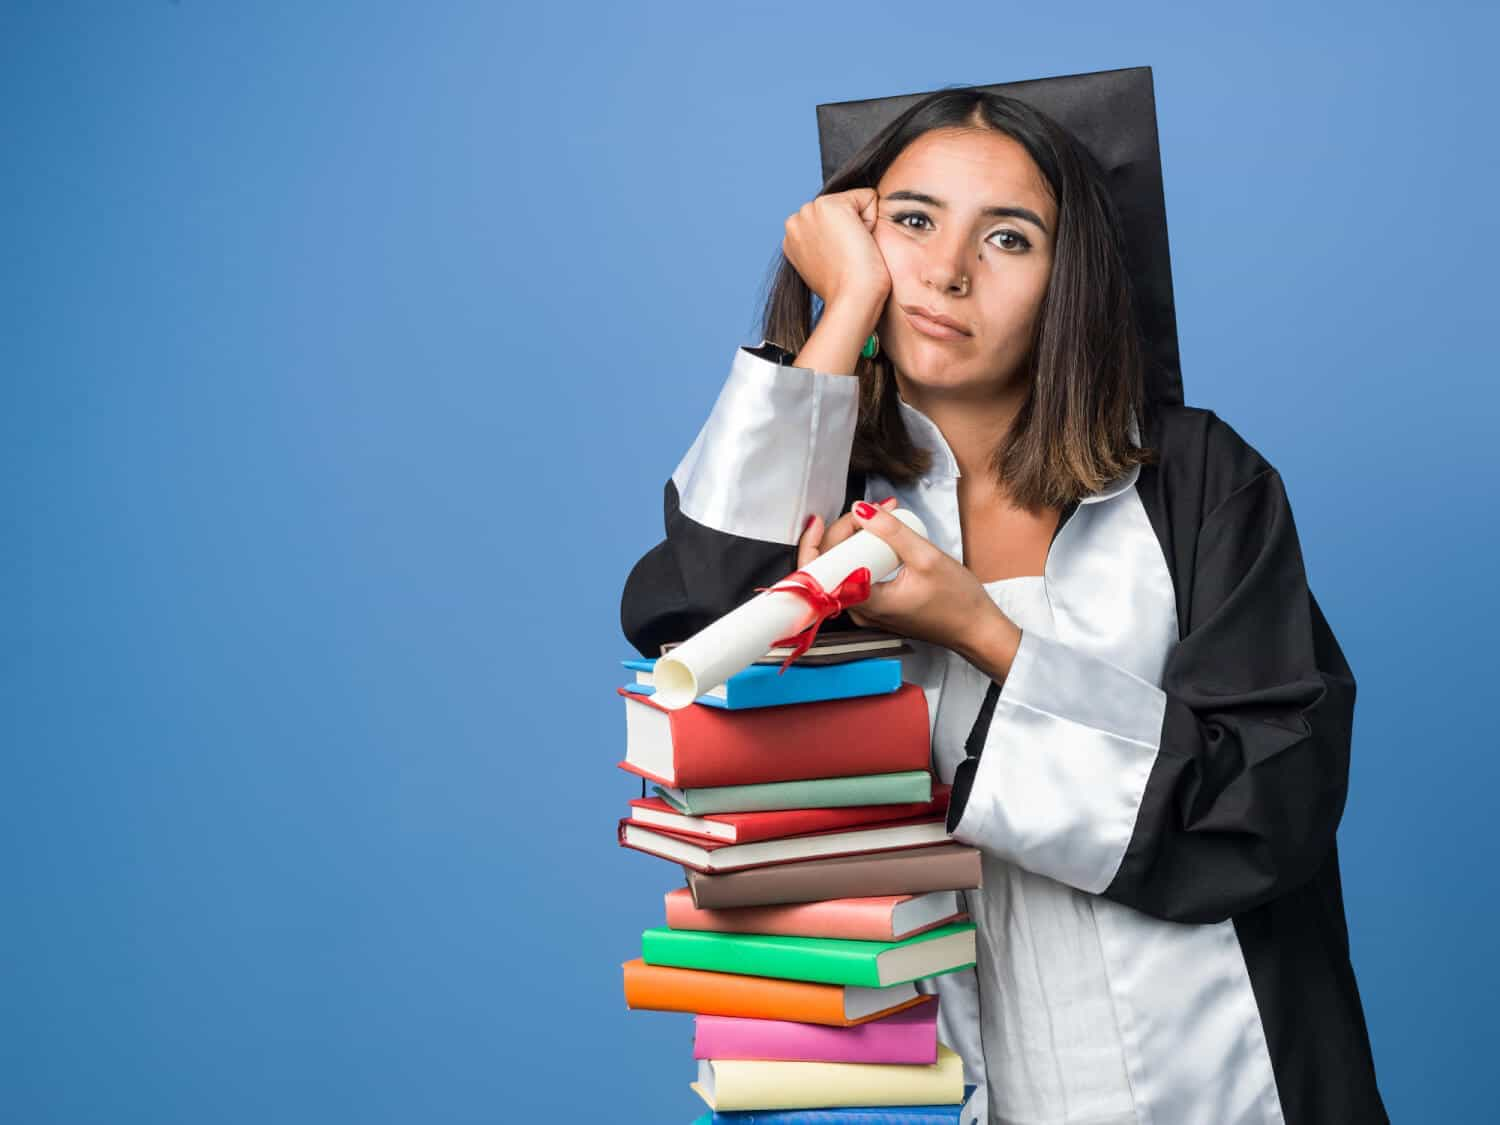 An upset college graduate rests her head on her hand after she hears recent student debt statistics